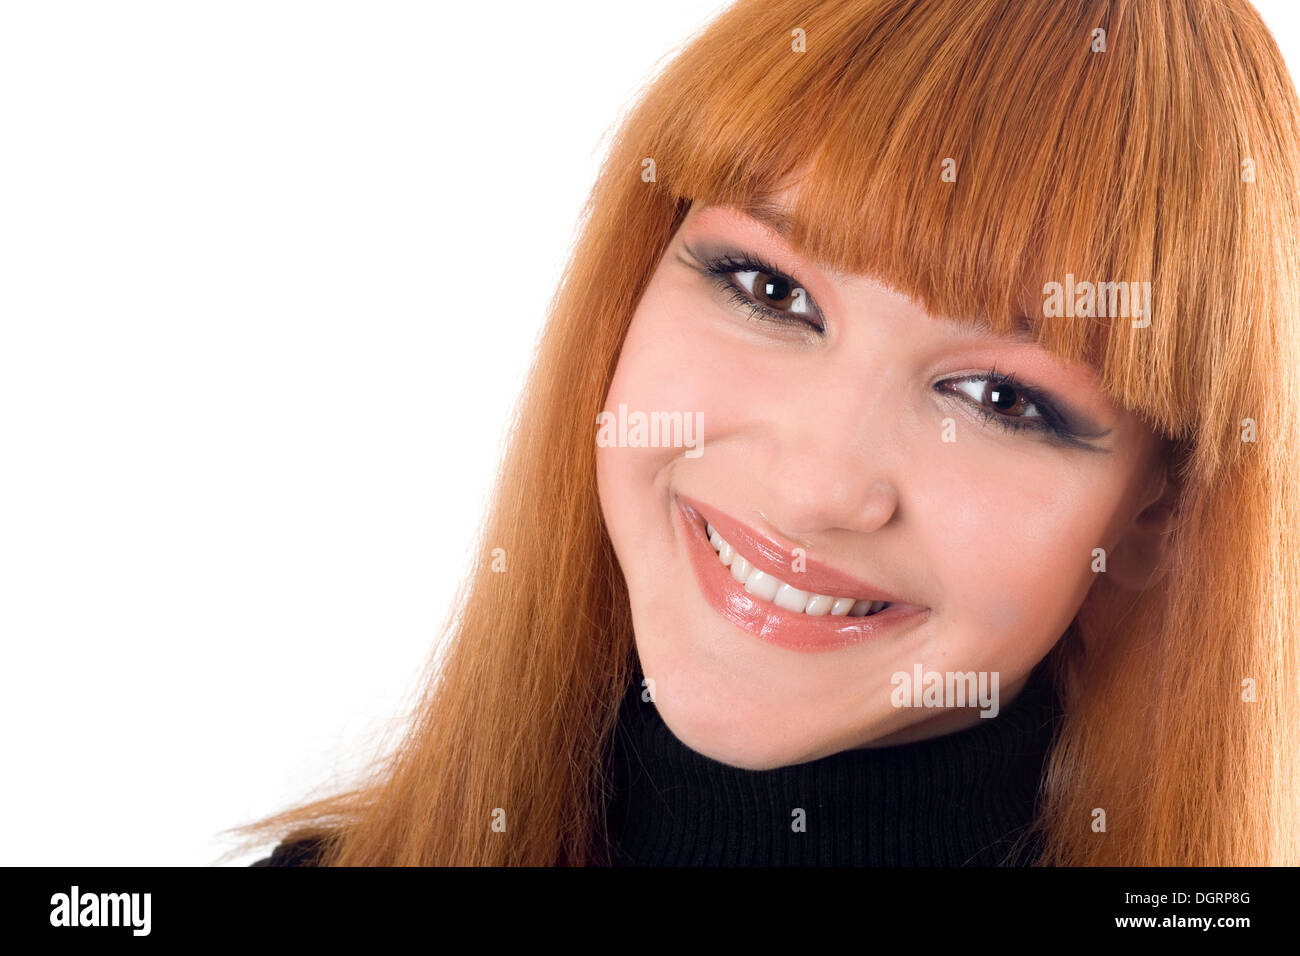 Portrait of the attractive smiling redheaded woman - Stock Image